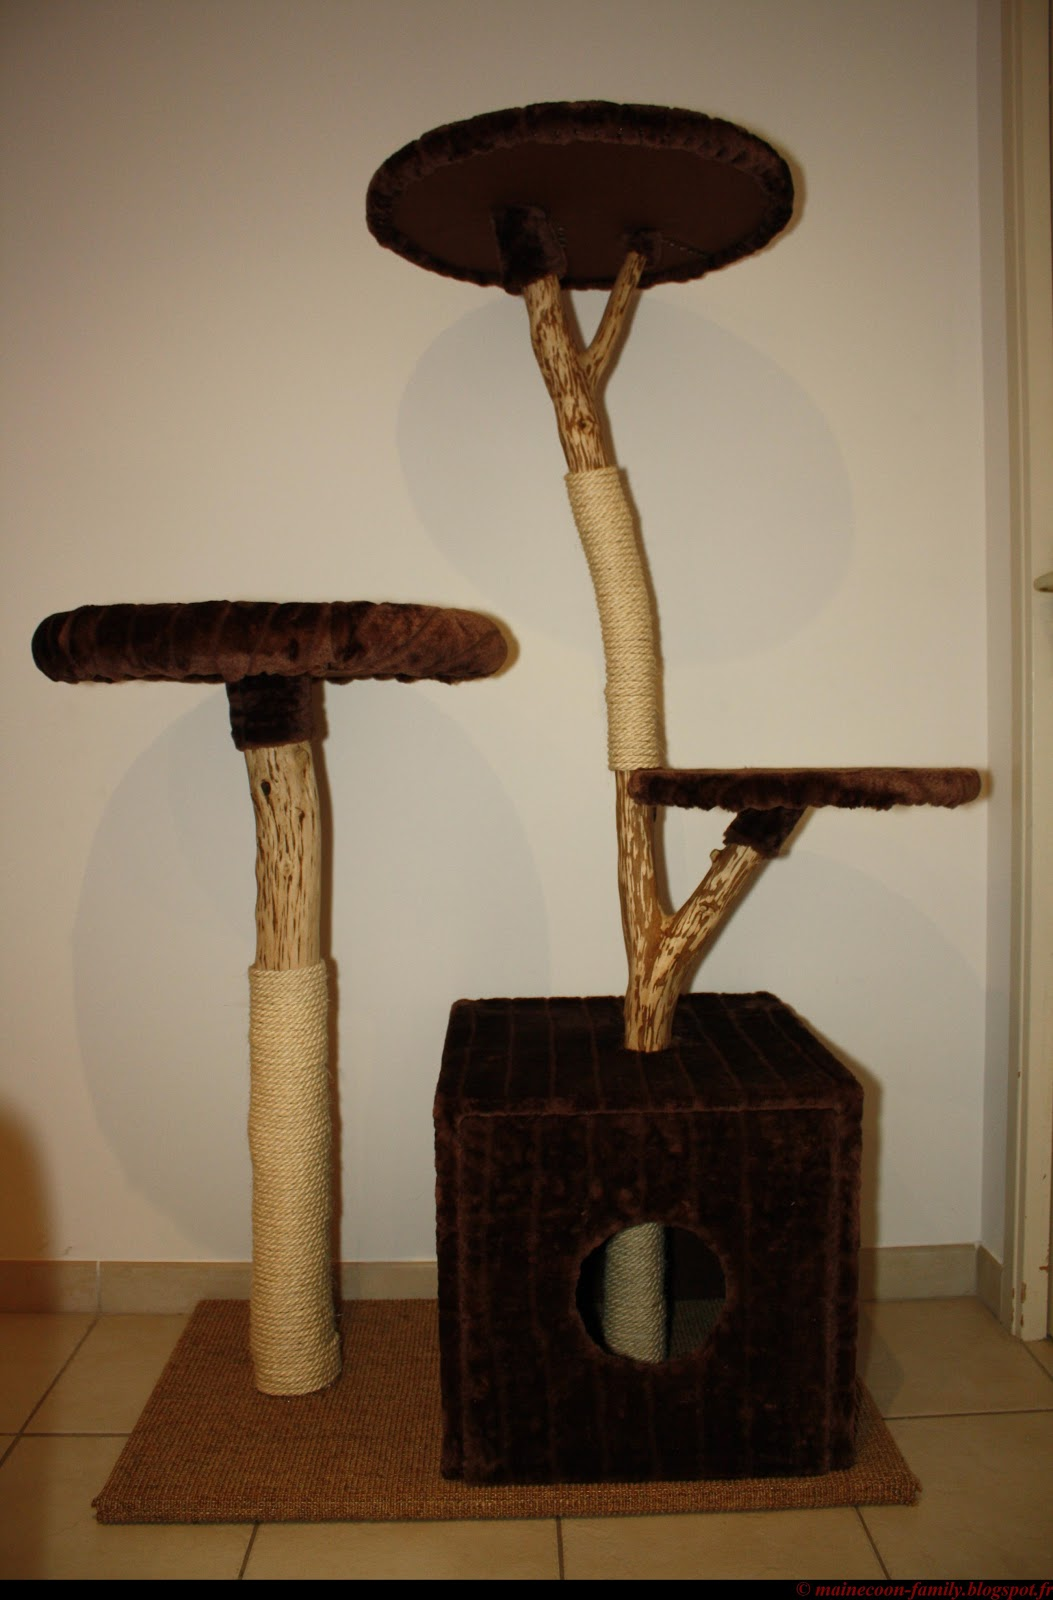 vends arbre chat en bois naturel. Black Bedroom Furniture Sets. Home Design Ideas